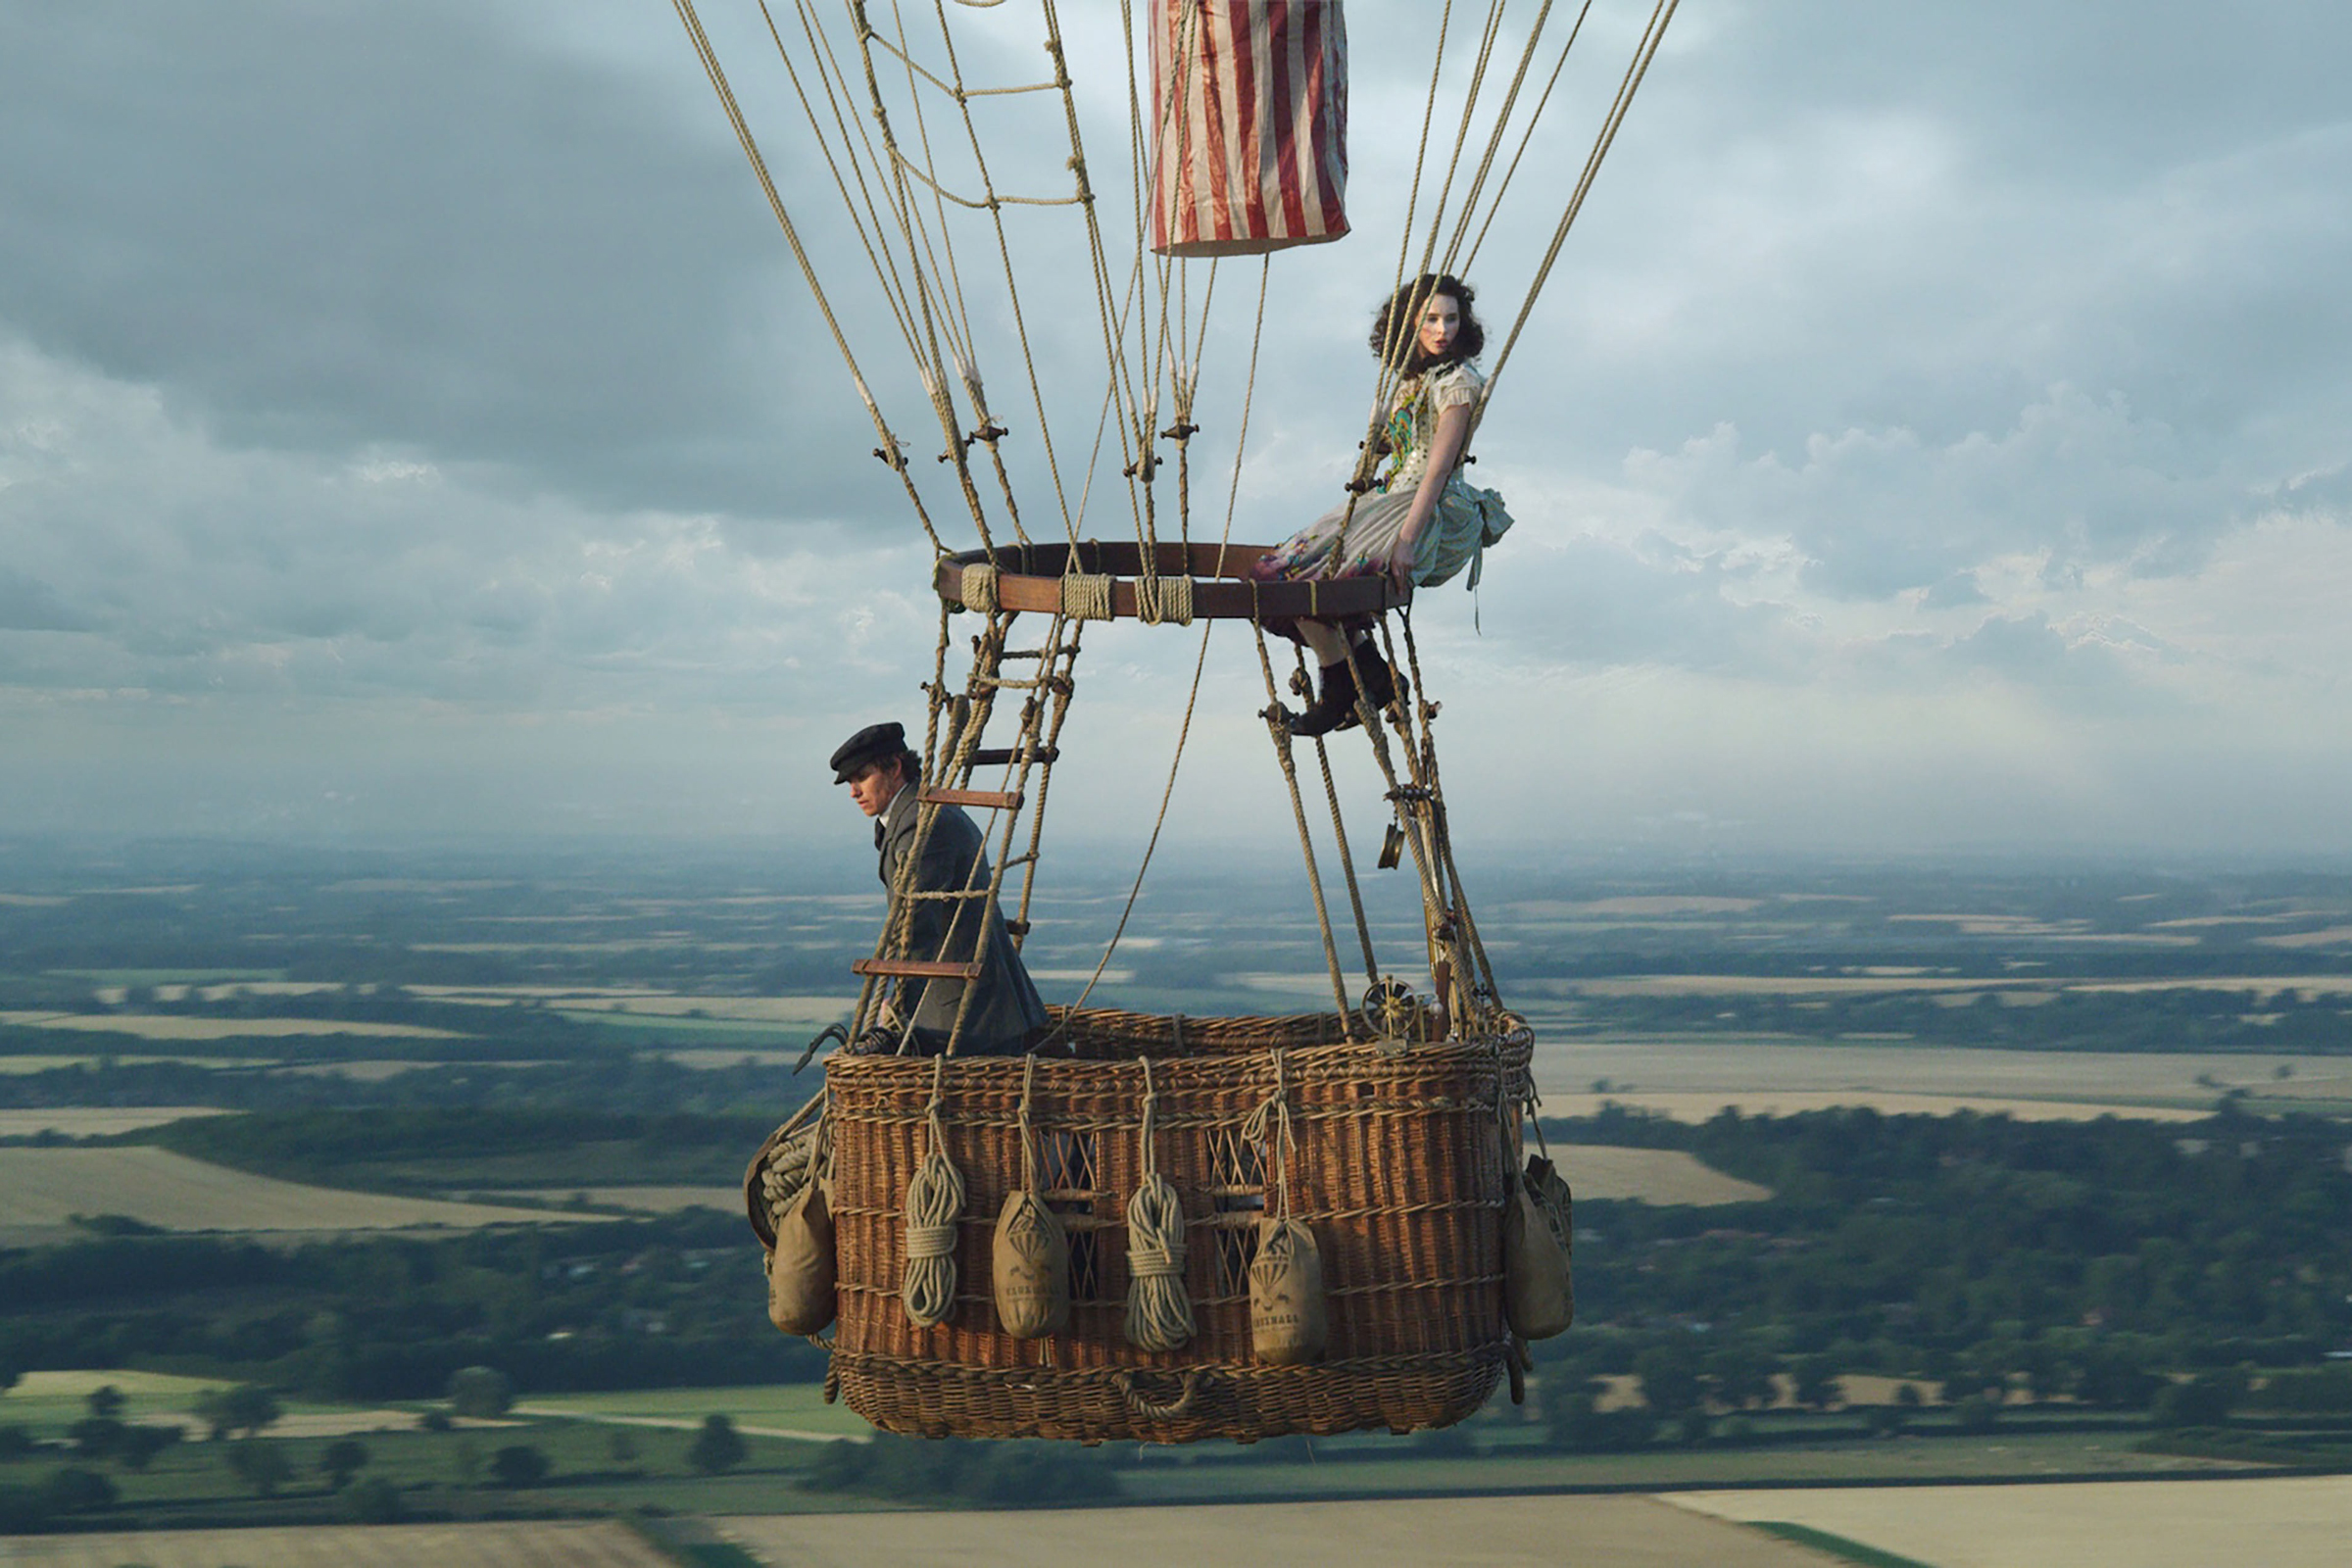 'The Aeronauts': Ballooning Biopic Goes Up, Up and Away From the Facts